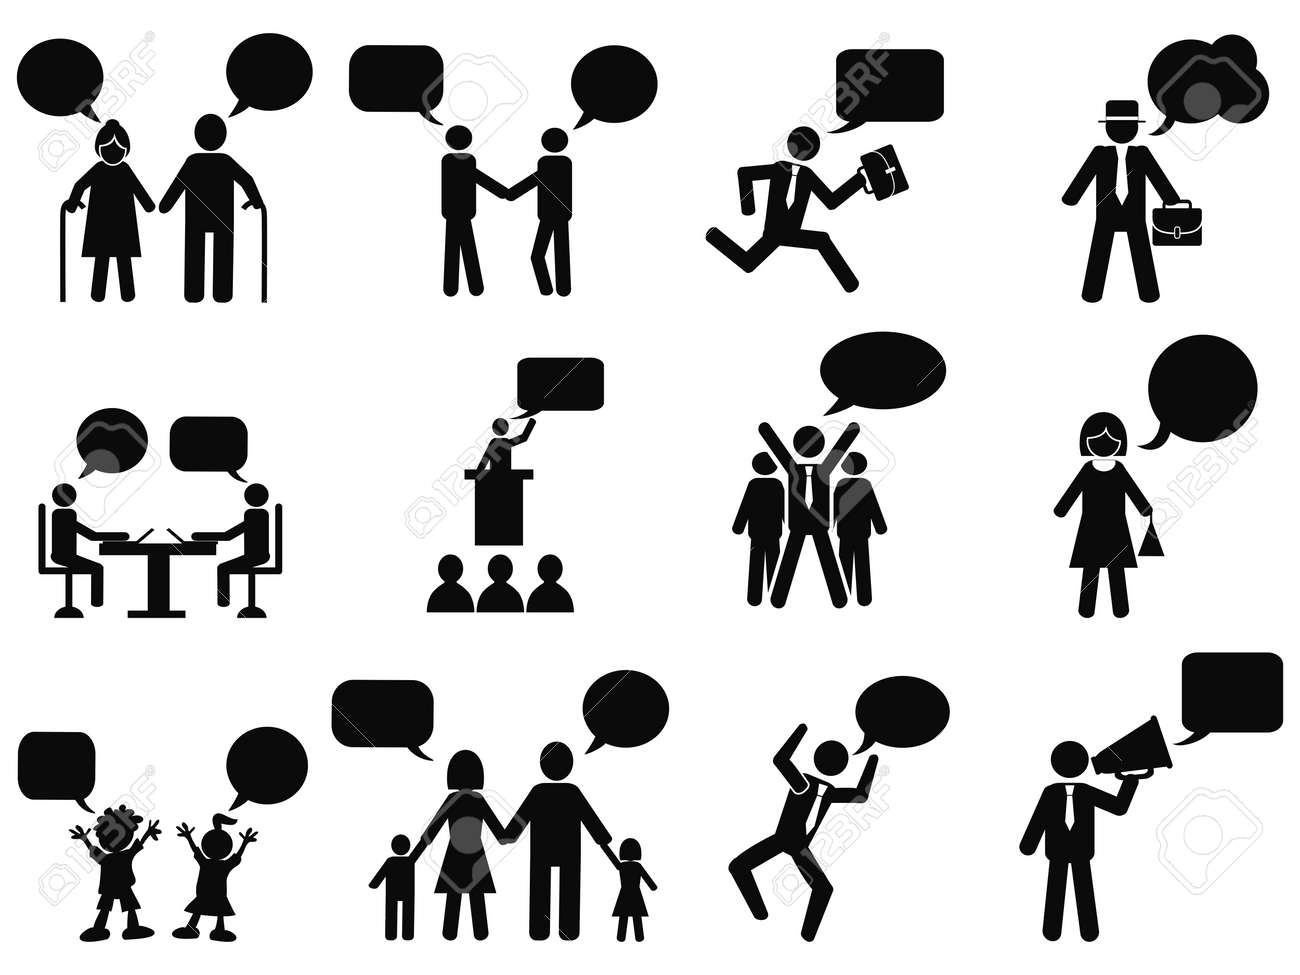 isolated black people with speech bubbles icons from white background - 35761606